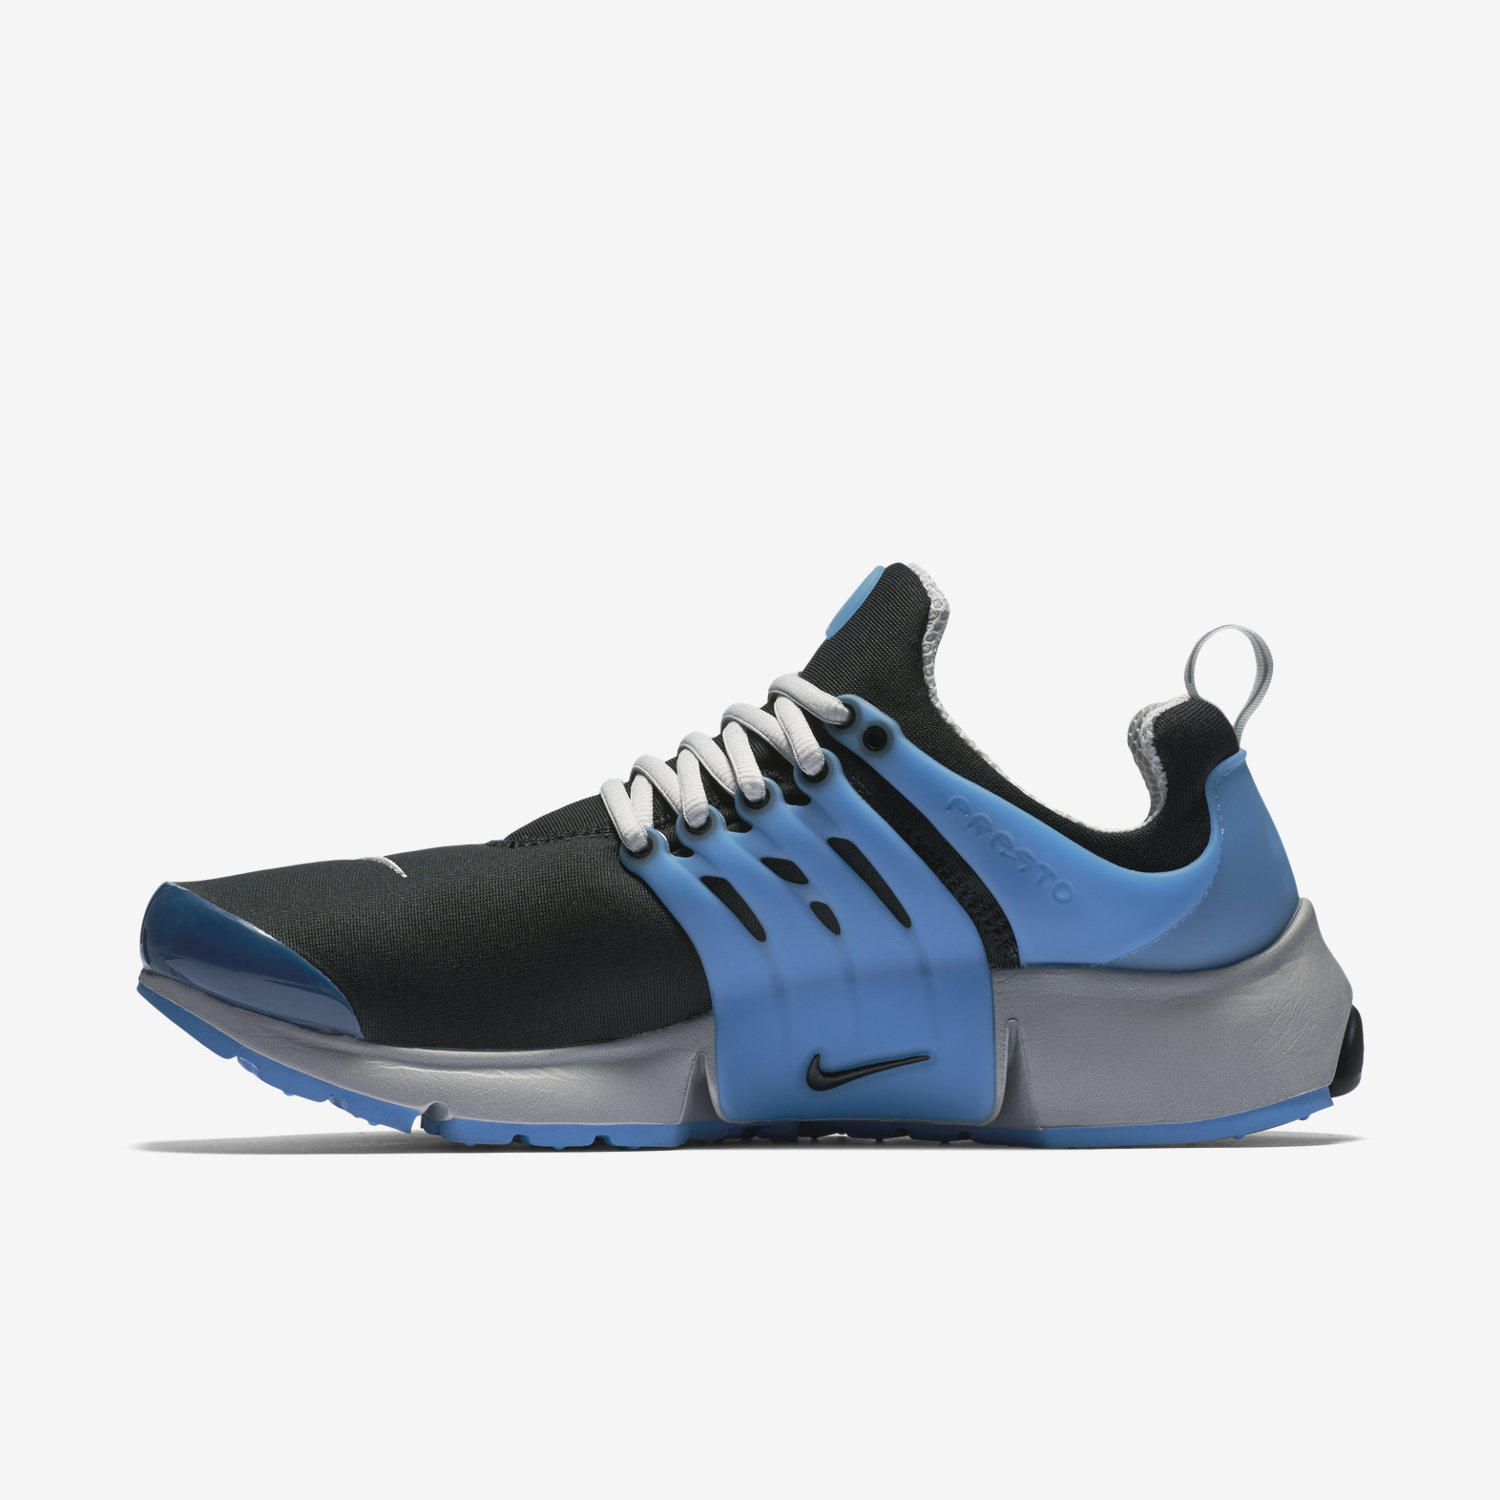 alliance for networking visual culture nike air presto shoes. Black Bedroom Furniture Sets. Home Design Ideas